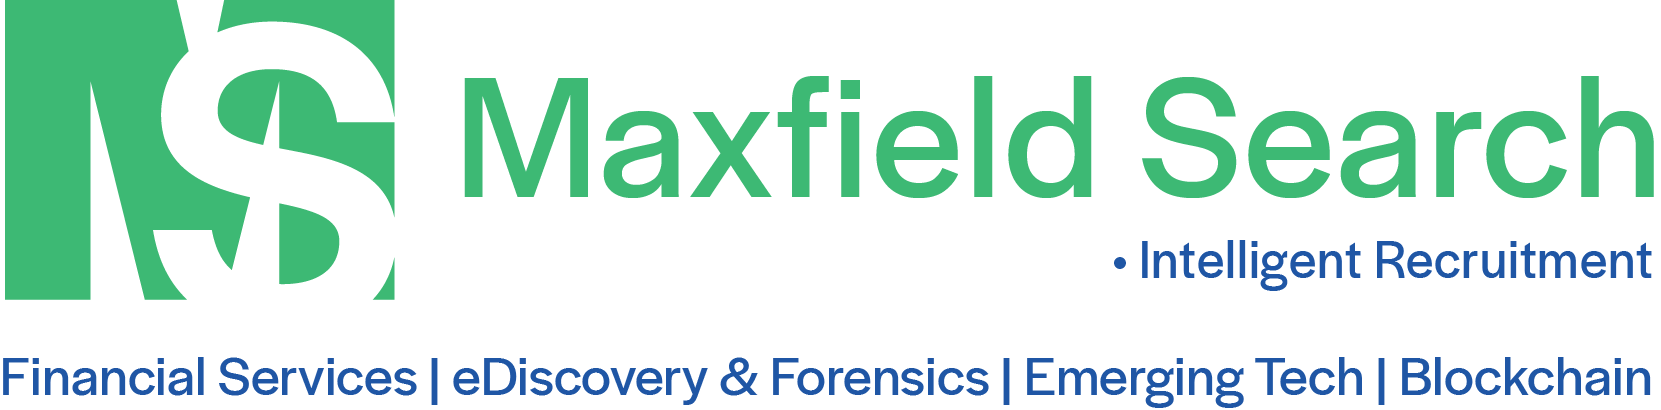 Maxfield Search